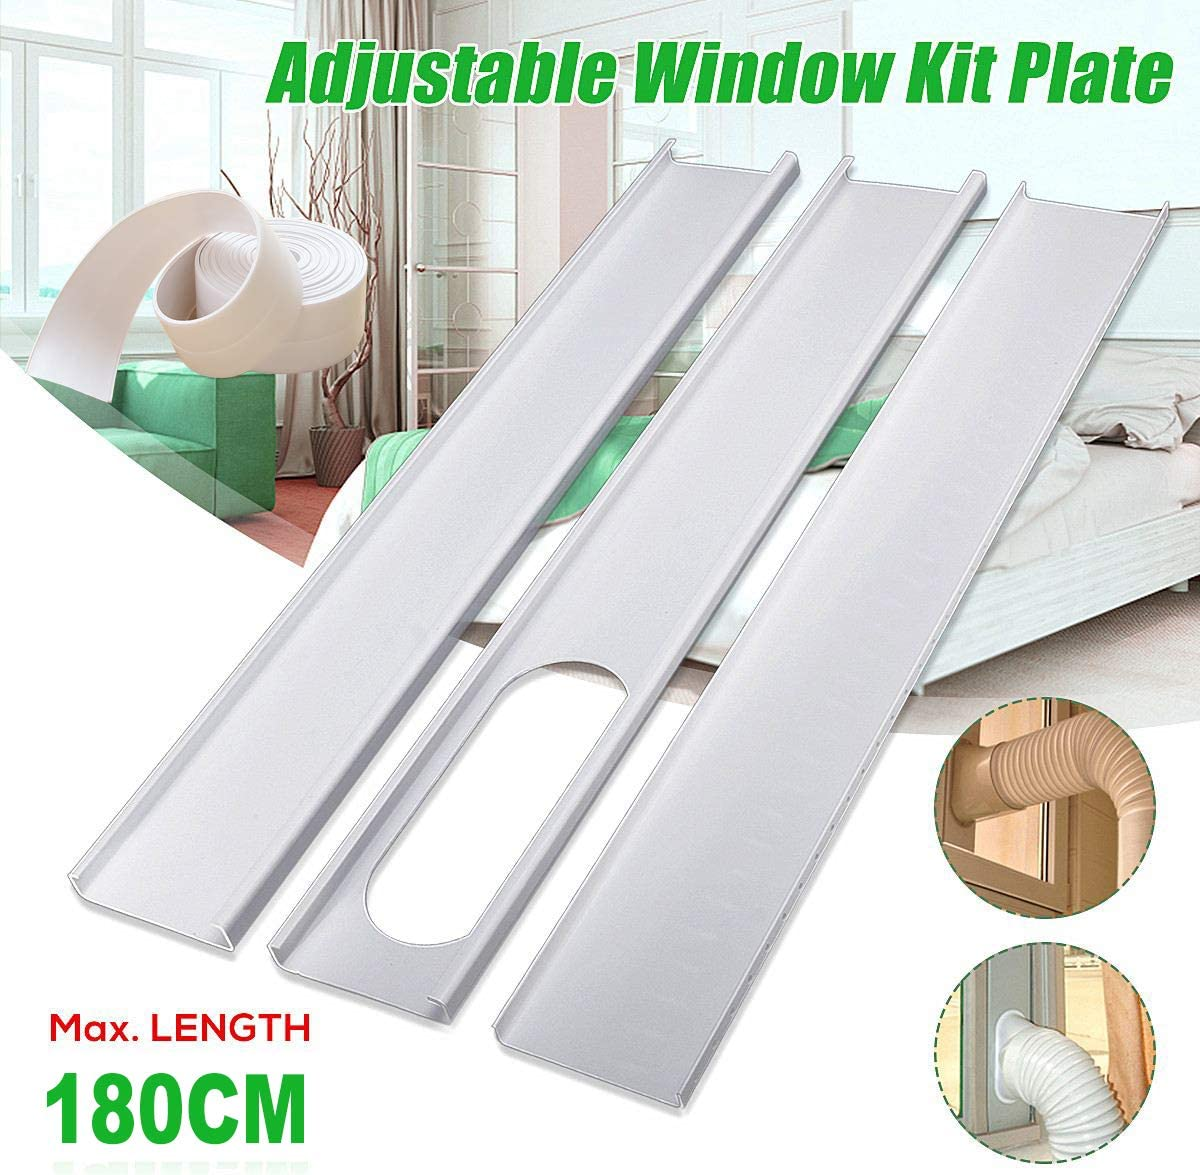 "Aozzy Portable Air Conditioner Plastic Window Kit Vent Kit for Sliding Glass Window (13CM(5.0"") Hose, Adjustable Length between135cm-180cm Portable AC Replacement Window Slide Kit Plate Panel"